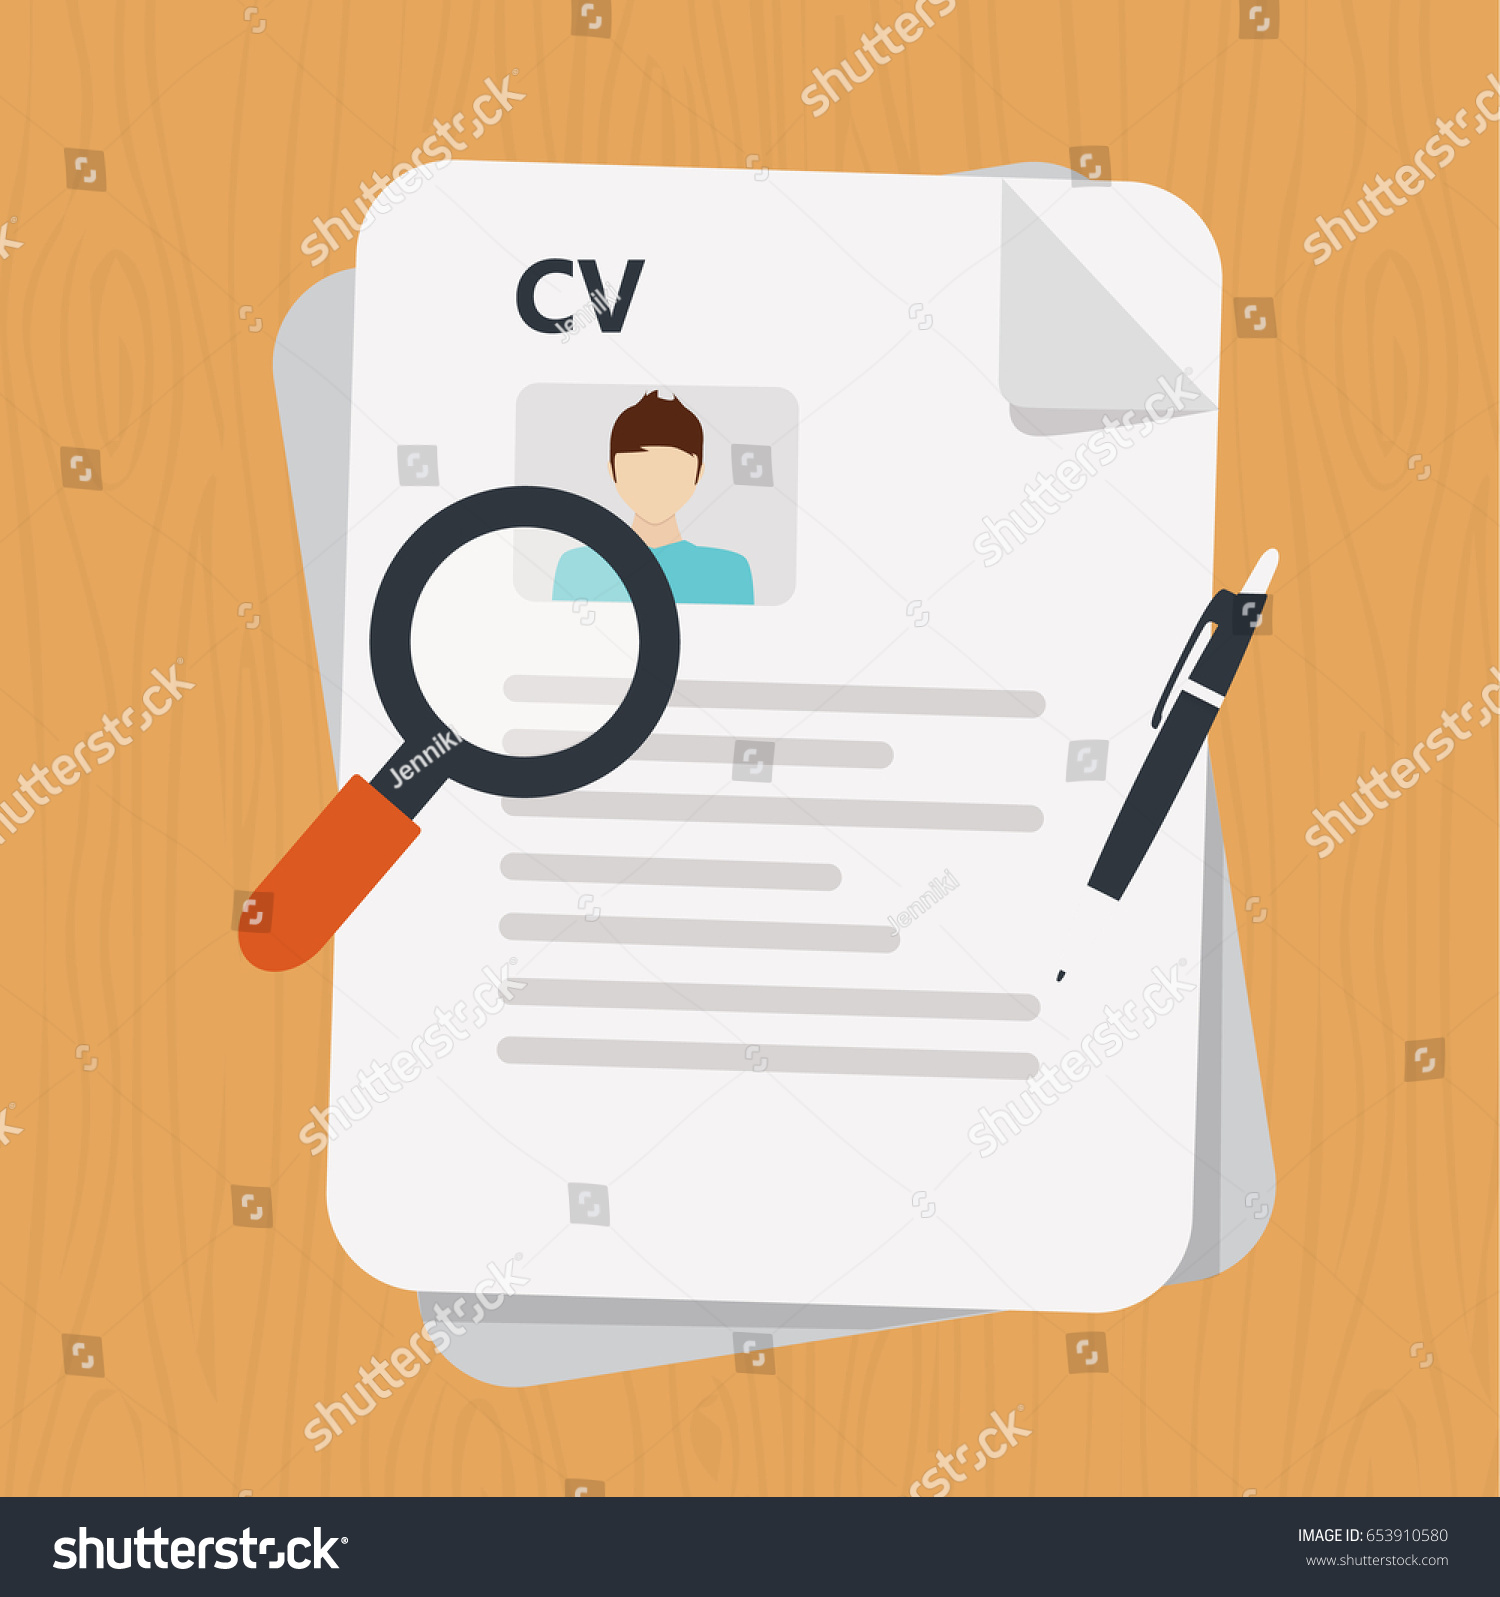 curriculum vitae document icon human resources stock vector